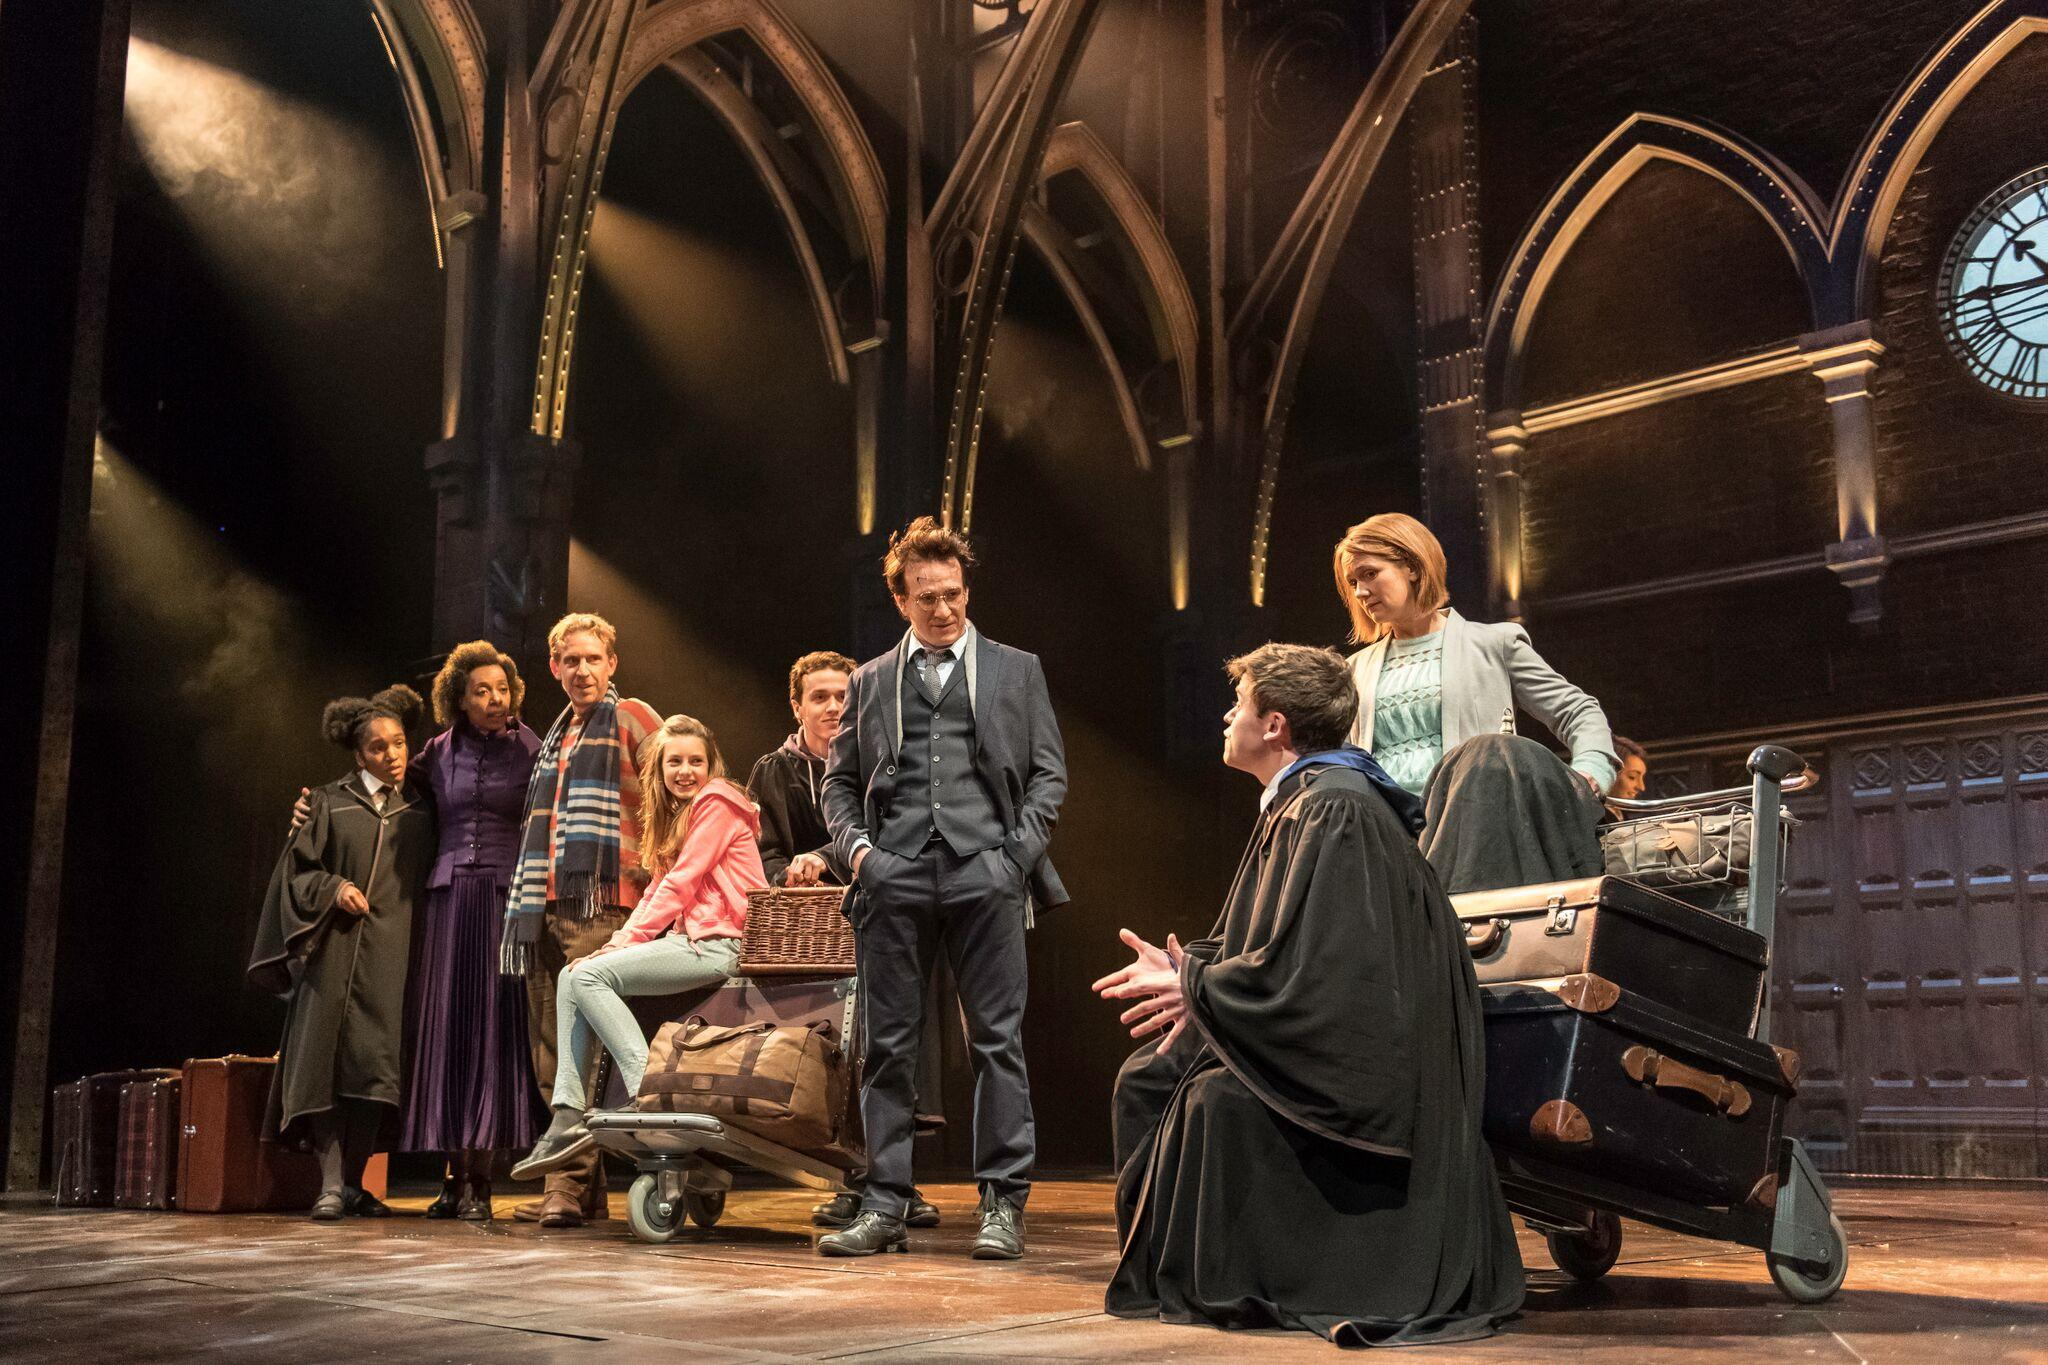 Harry Potter and the Cursed Child by Jack Thorne based on a story by JK Rowling, John Tiffany and Jack Thorne | Palace Theatre | Directed by John Tiffany | Set by Christine Jones | Costumes by Katrina Lindsay | Lighting by Neil Austin